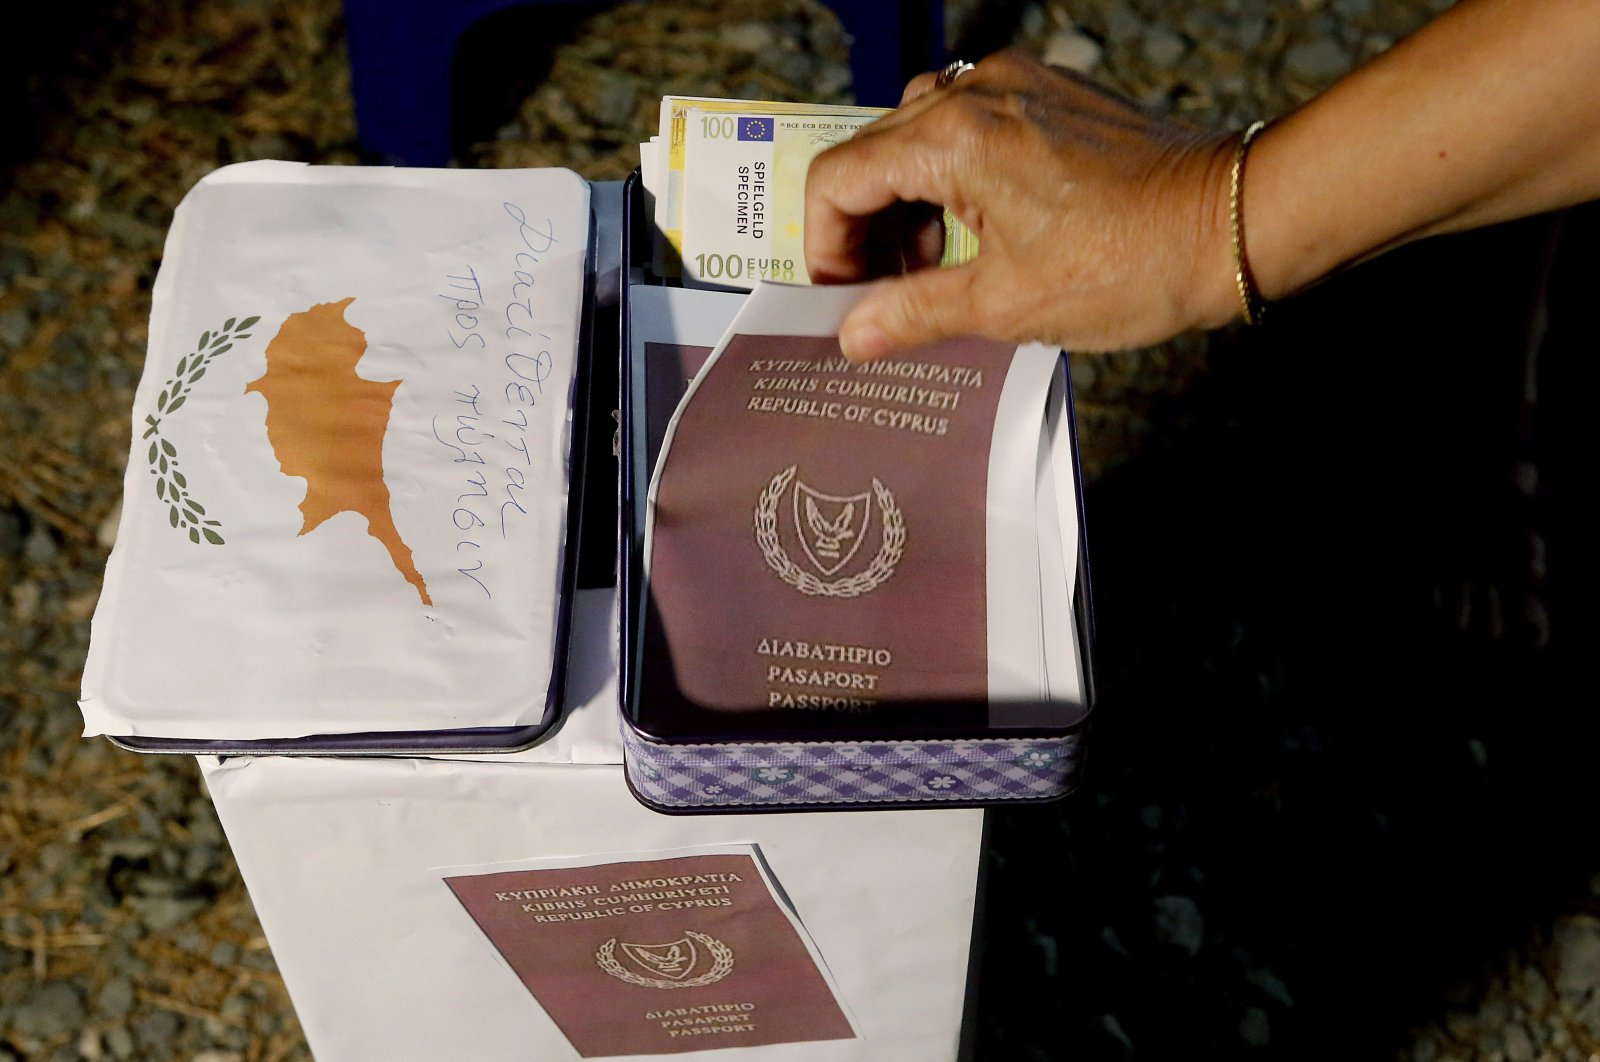 A demonstrator takes a mock copy of a Cyprus passport during a demonstration against corruption outside of the conference center, Nicosia, Oct. 14, 2020. (AP Photo)